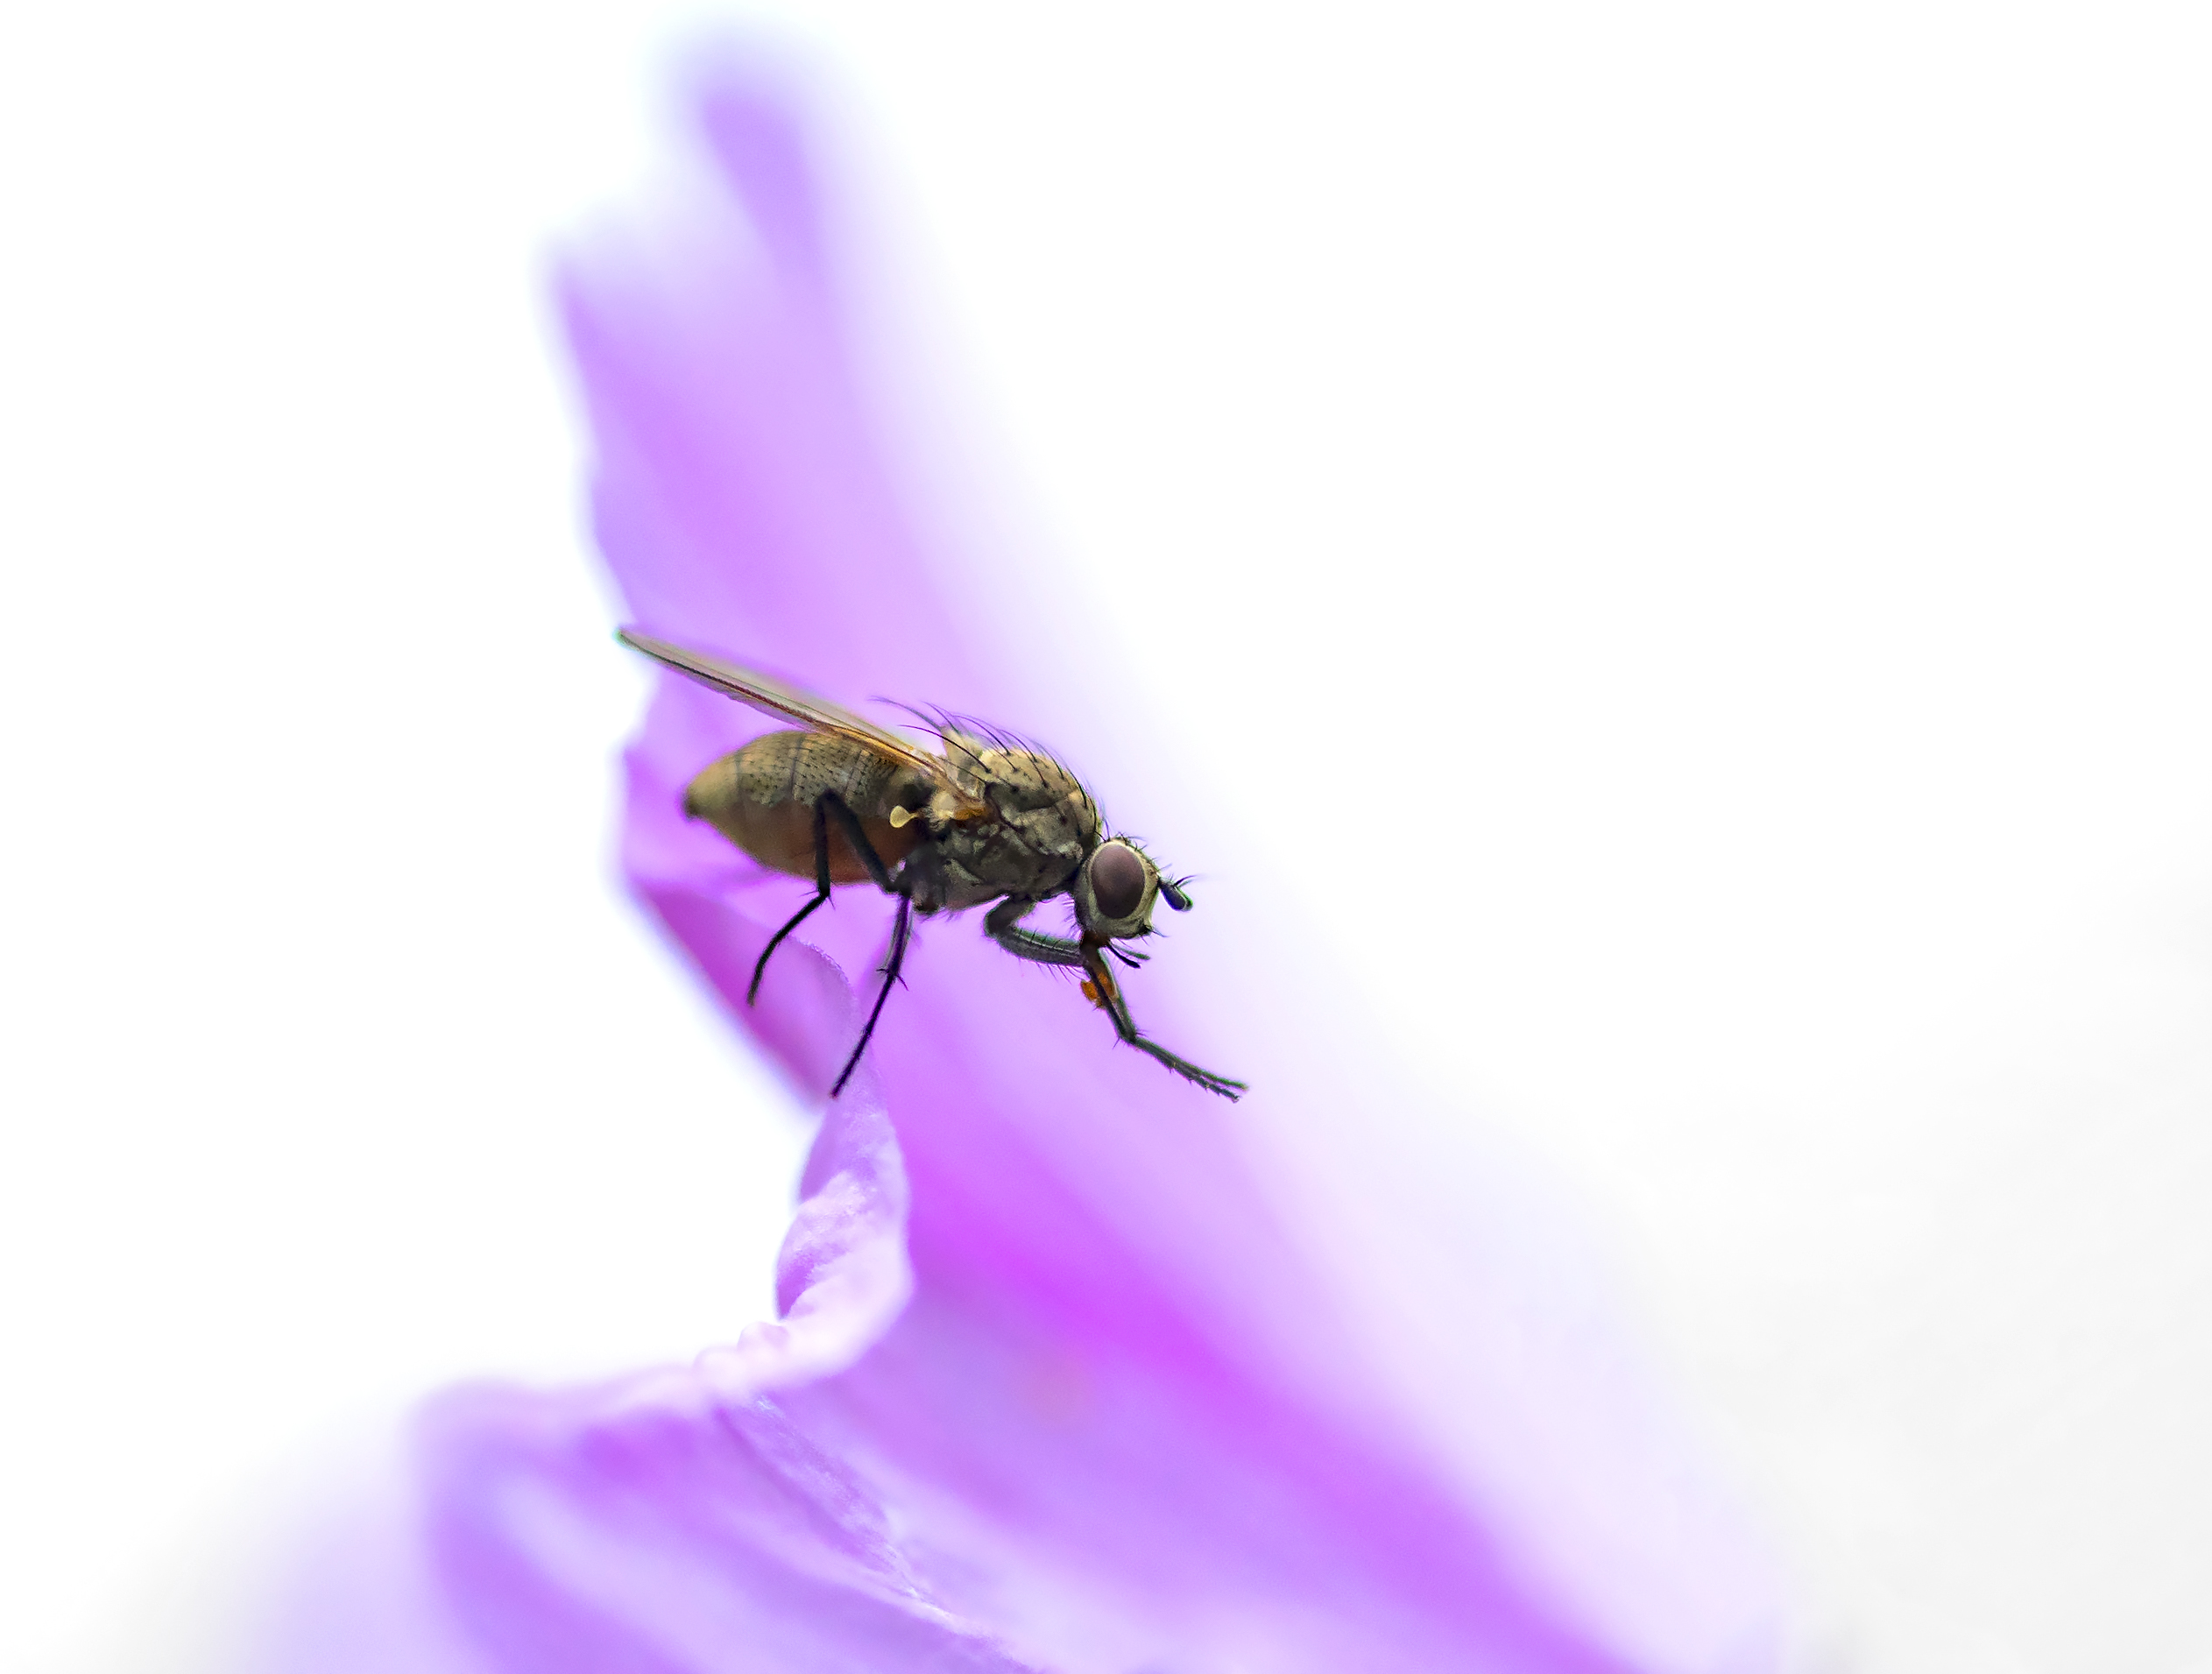 Just a fly on a pink flower